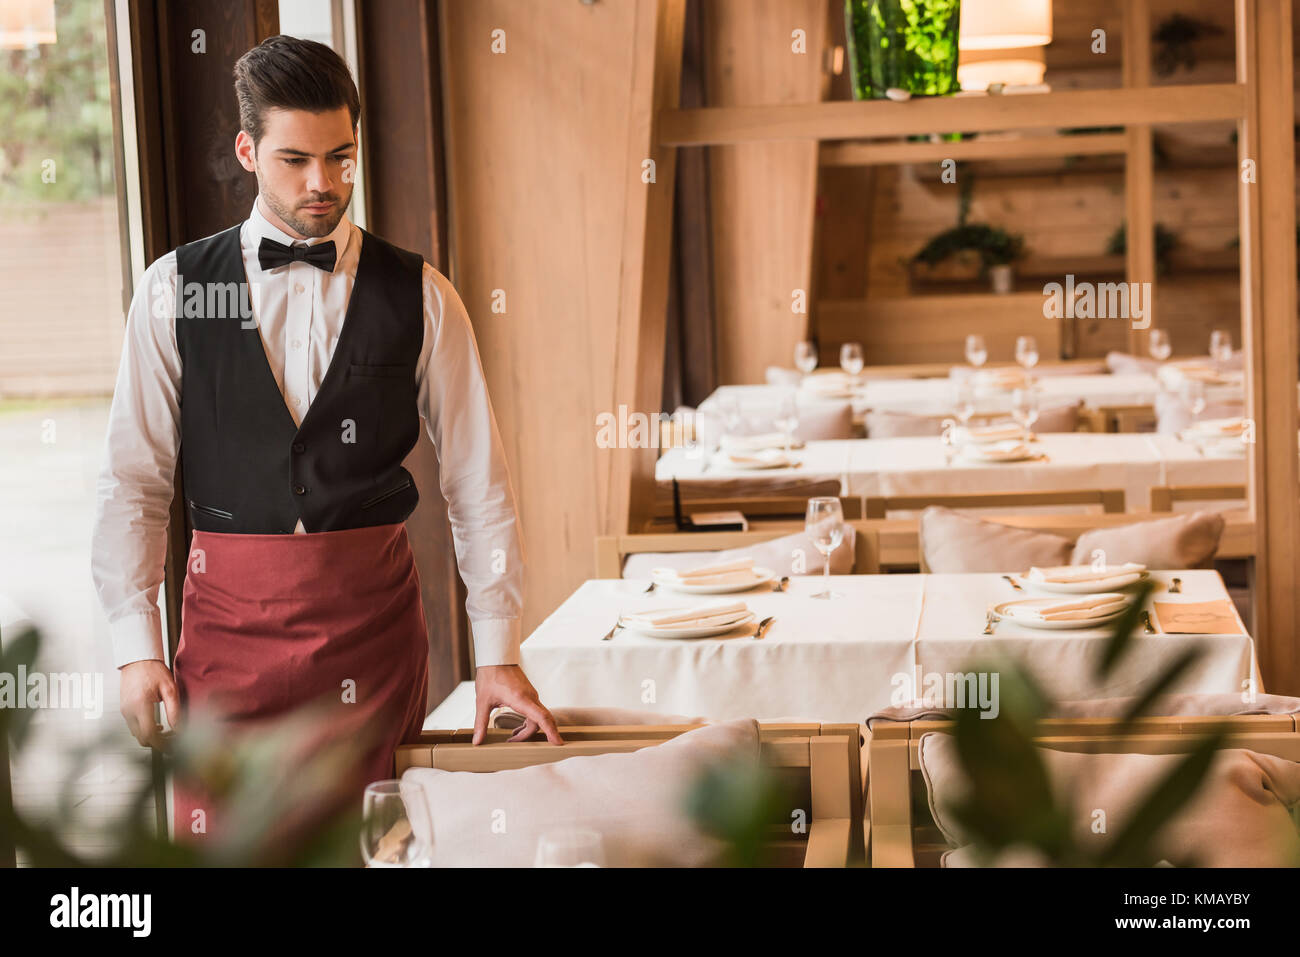 Waiter looking at served table - Stock Image